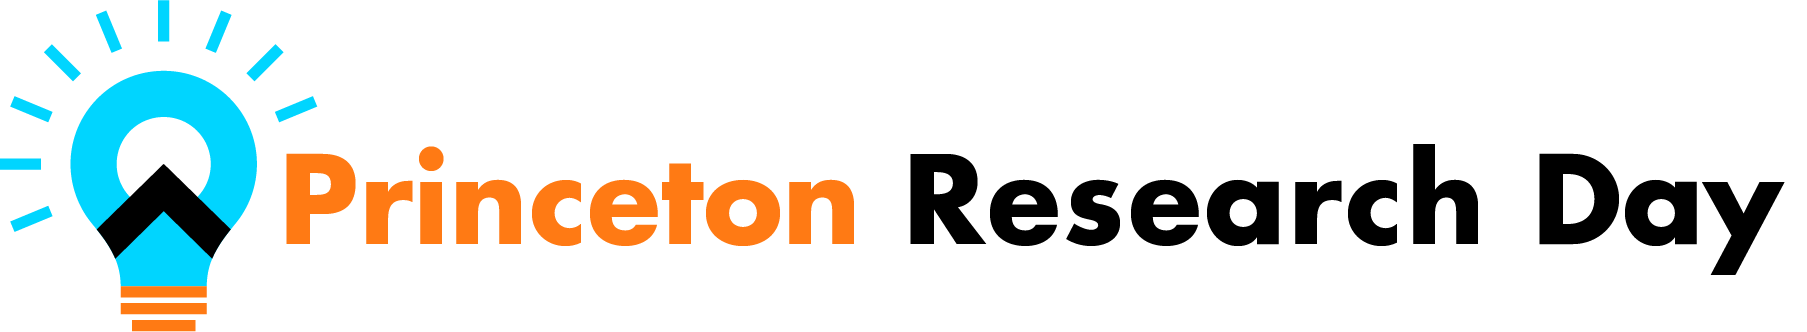 Princeton Research Day logo with lightbulb.